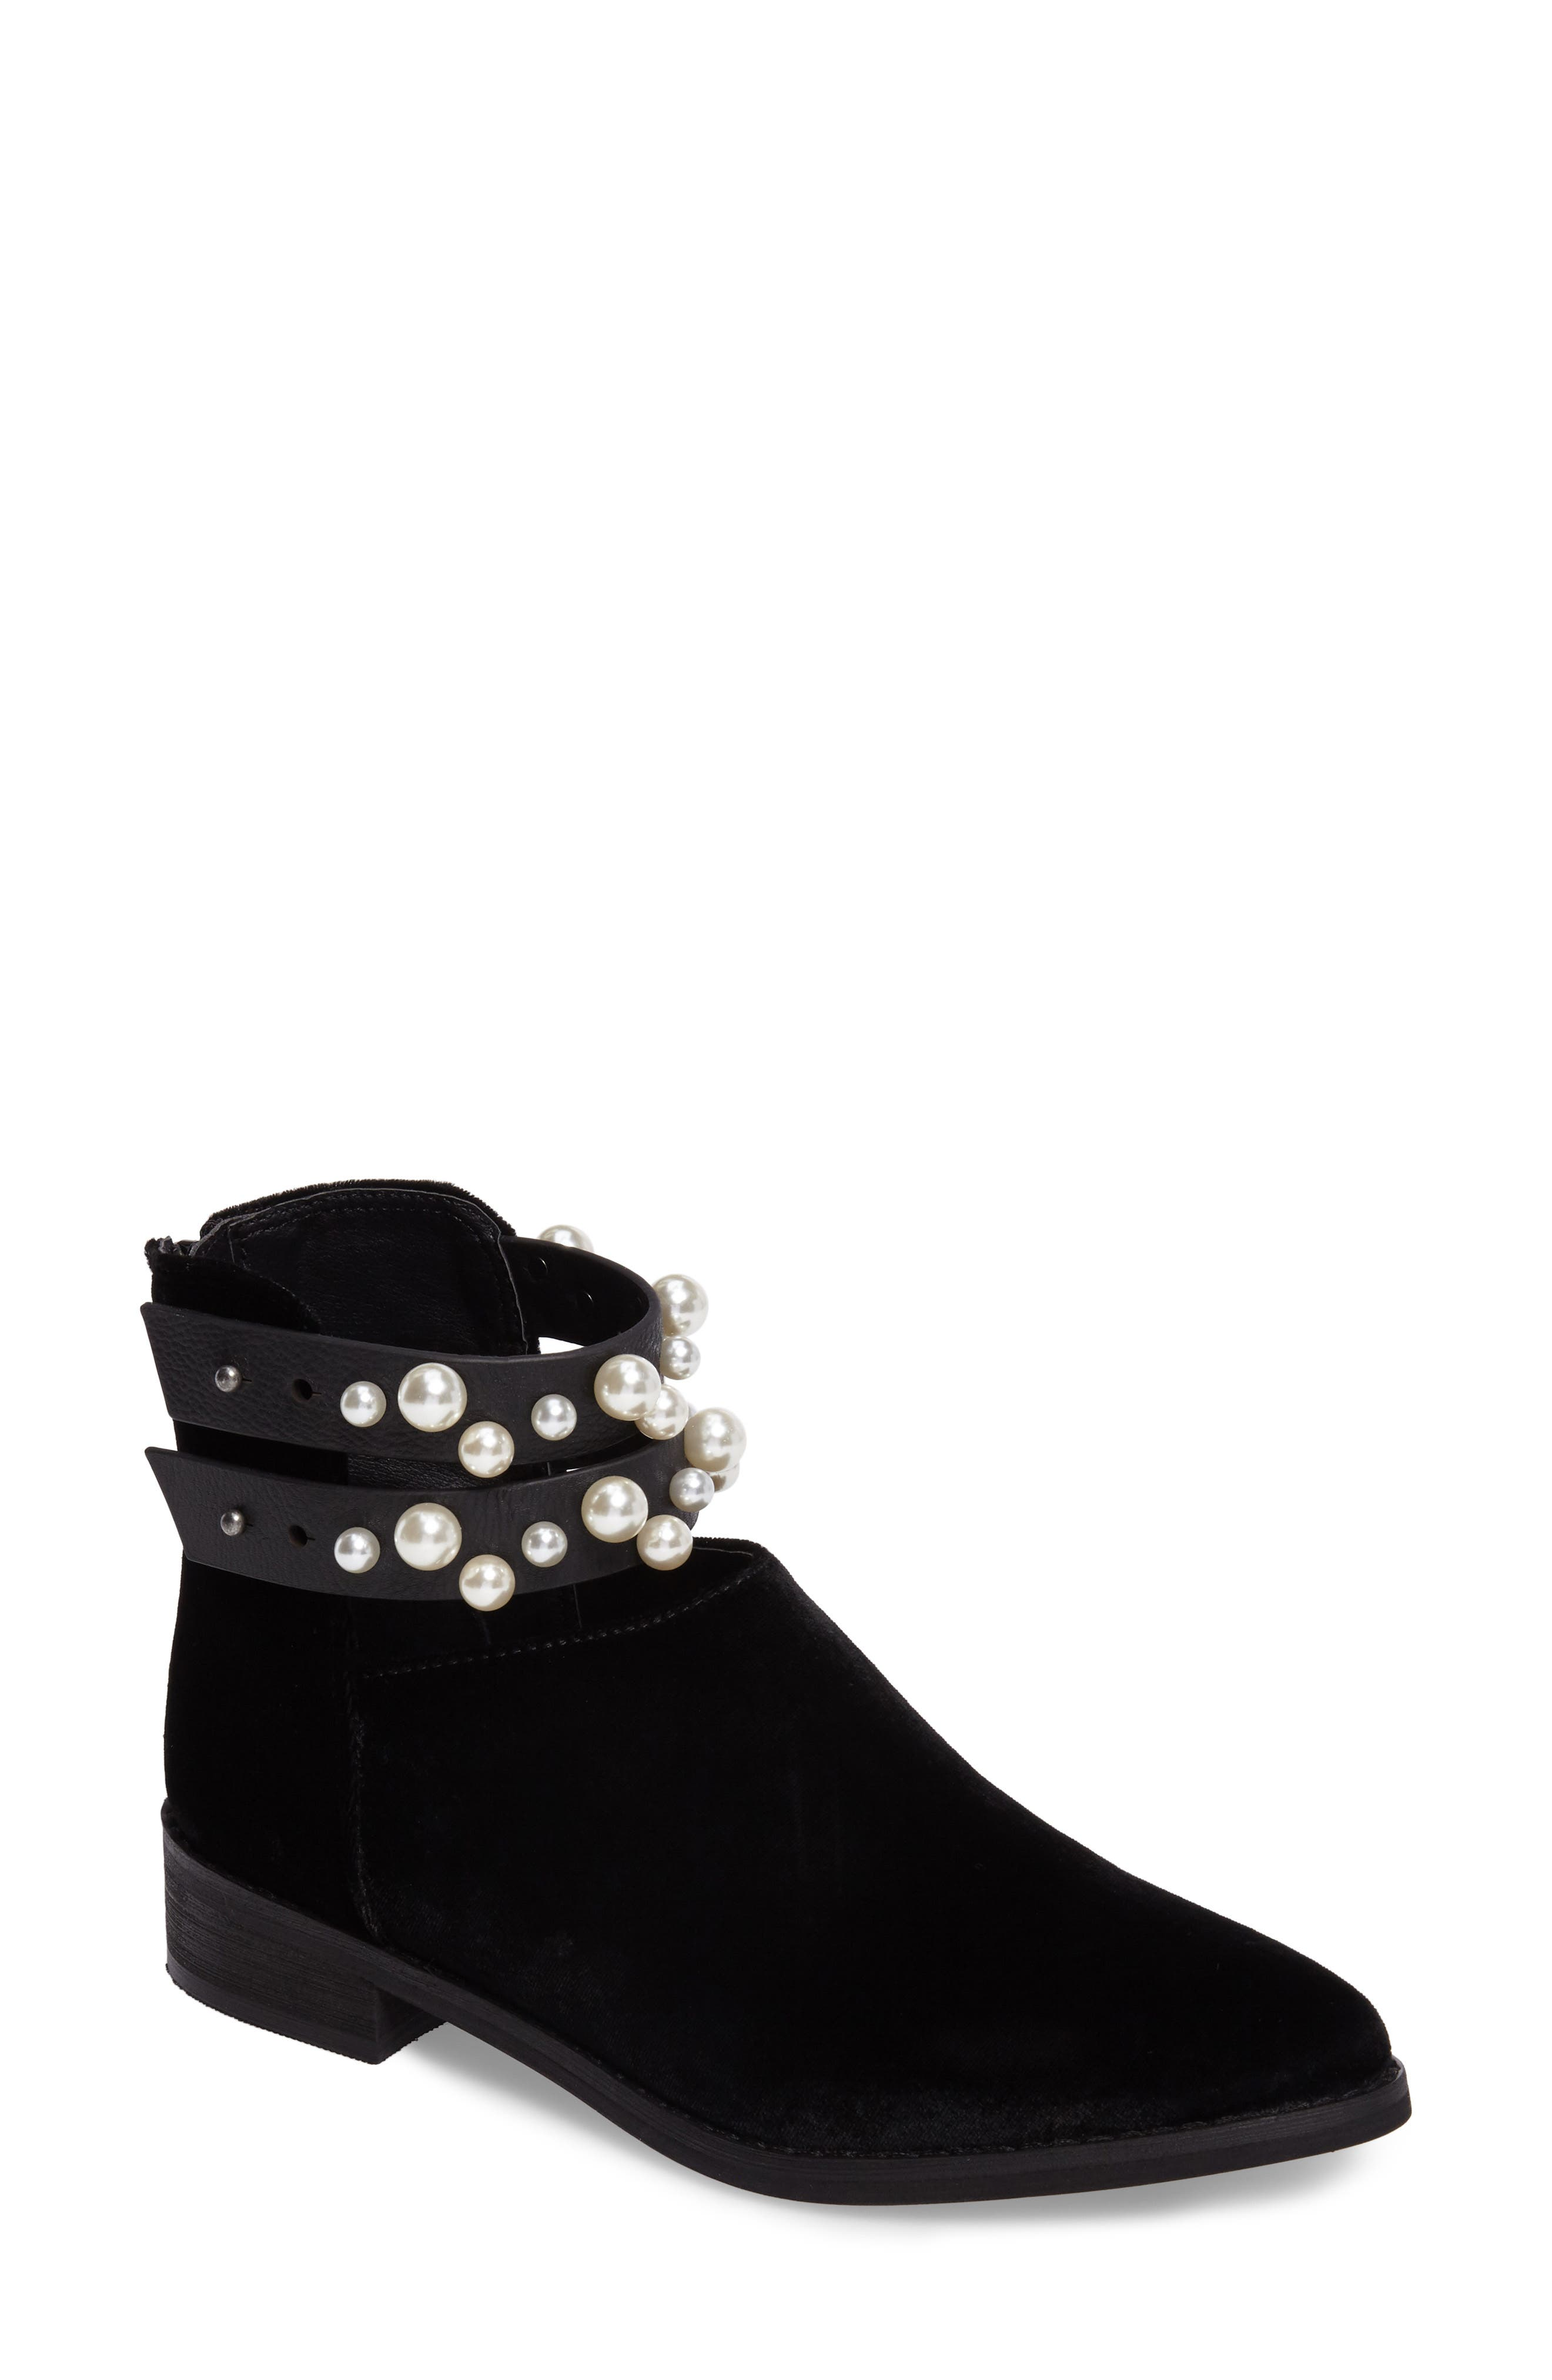 Alternate Image 1 Selected - E8 by Miista Maisie Embellished Bootie (Women)